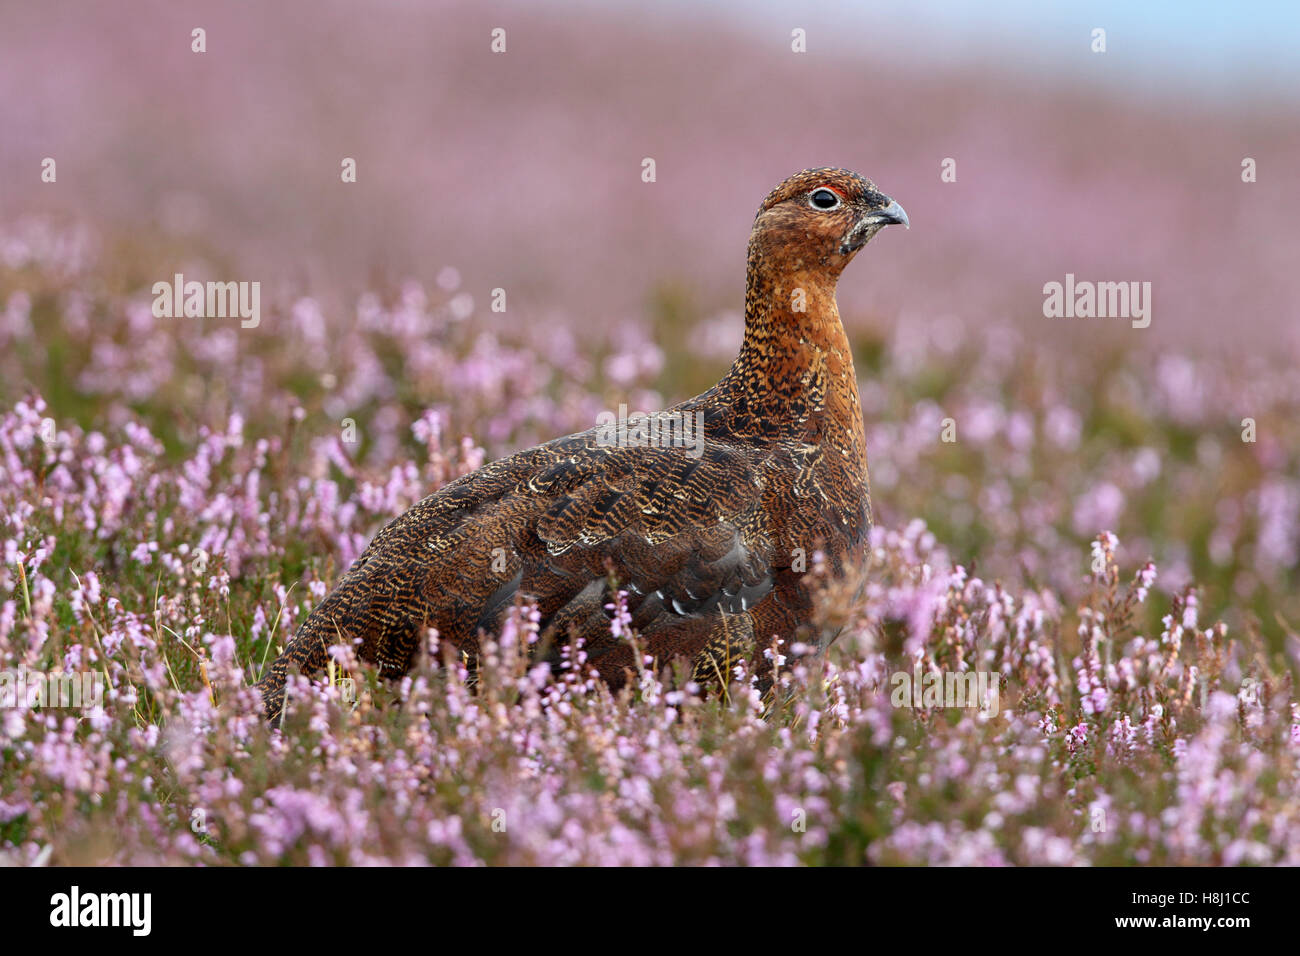 Red Grouse Lagopus lagopus scotica adult male - Stock Image